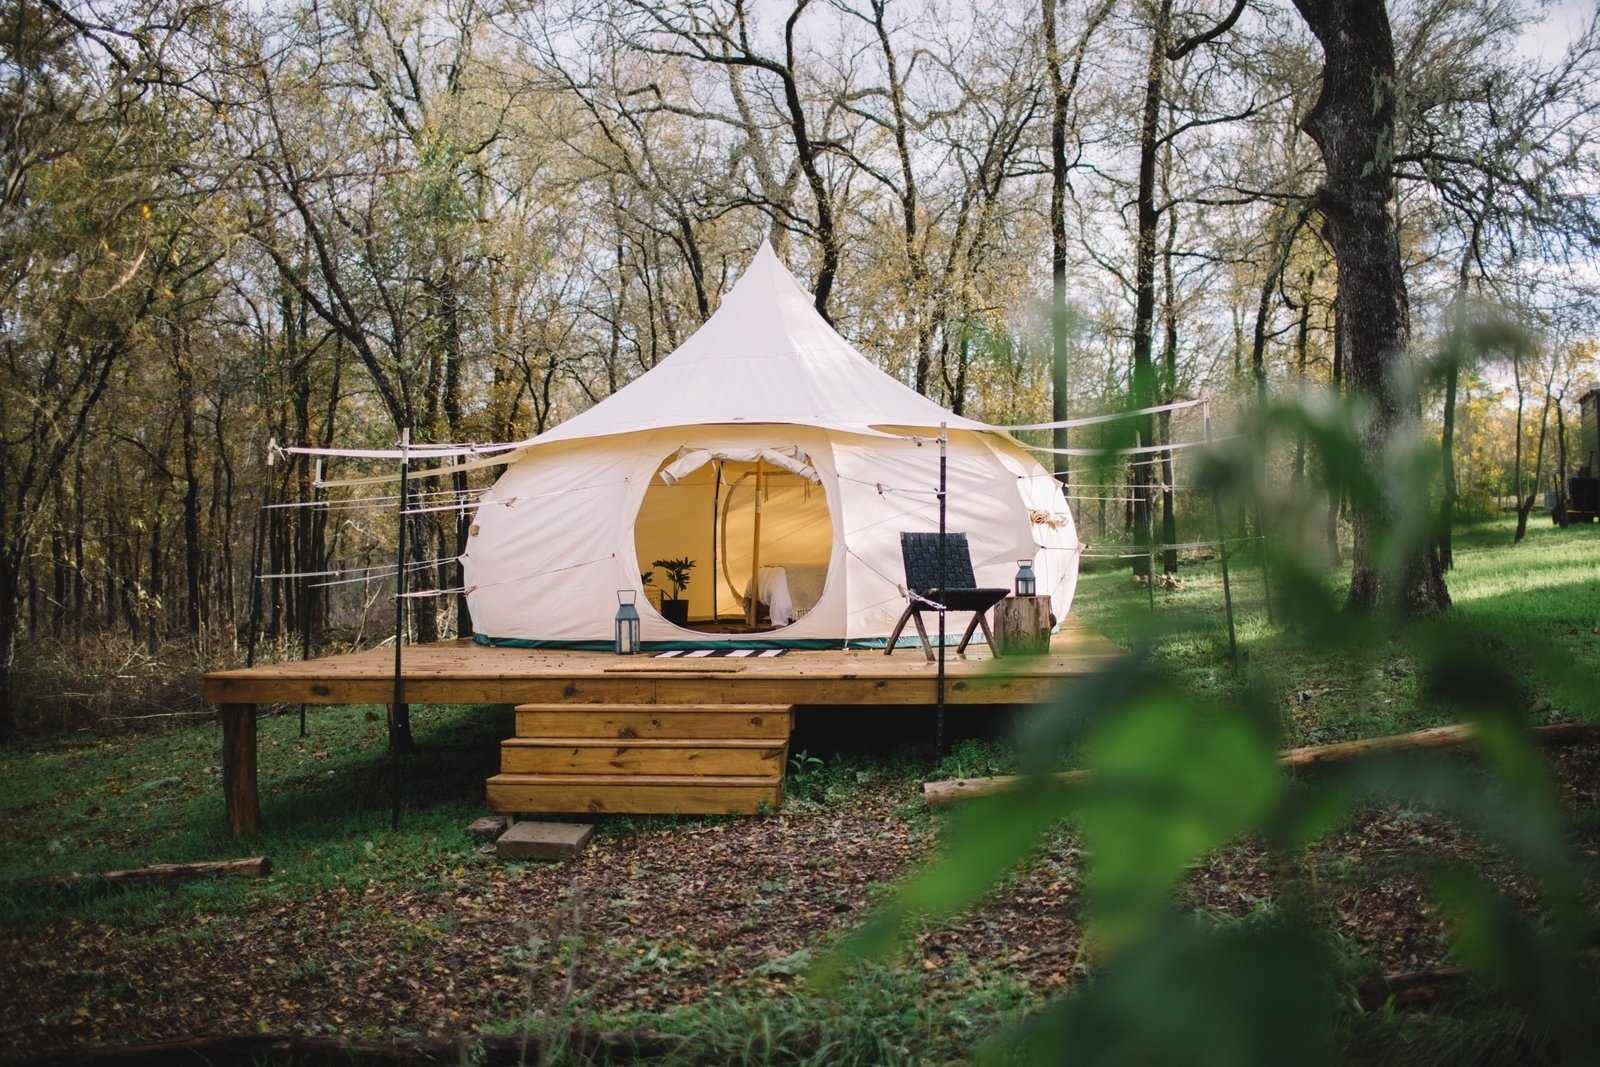 Photo 3 of 10 in 9 Yurt Vacation Rentals For the Modern Alternative Camper